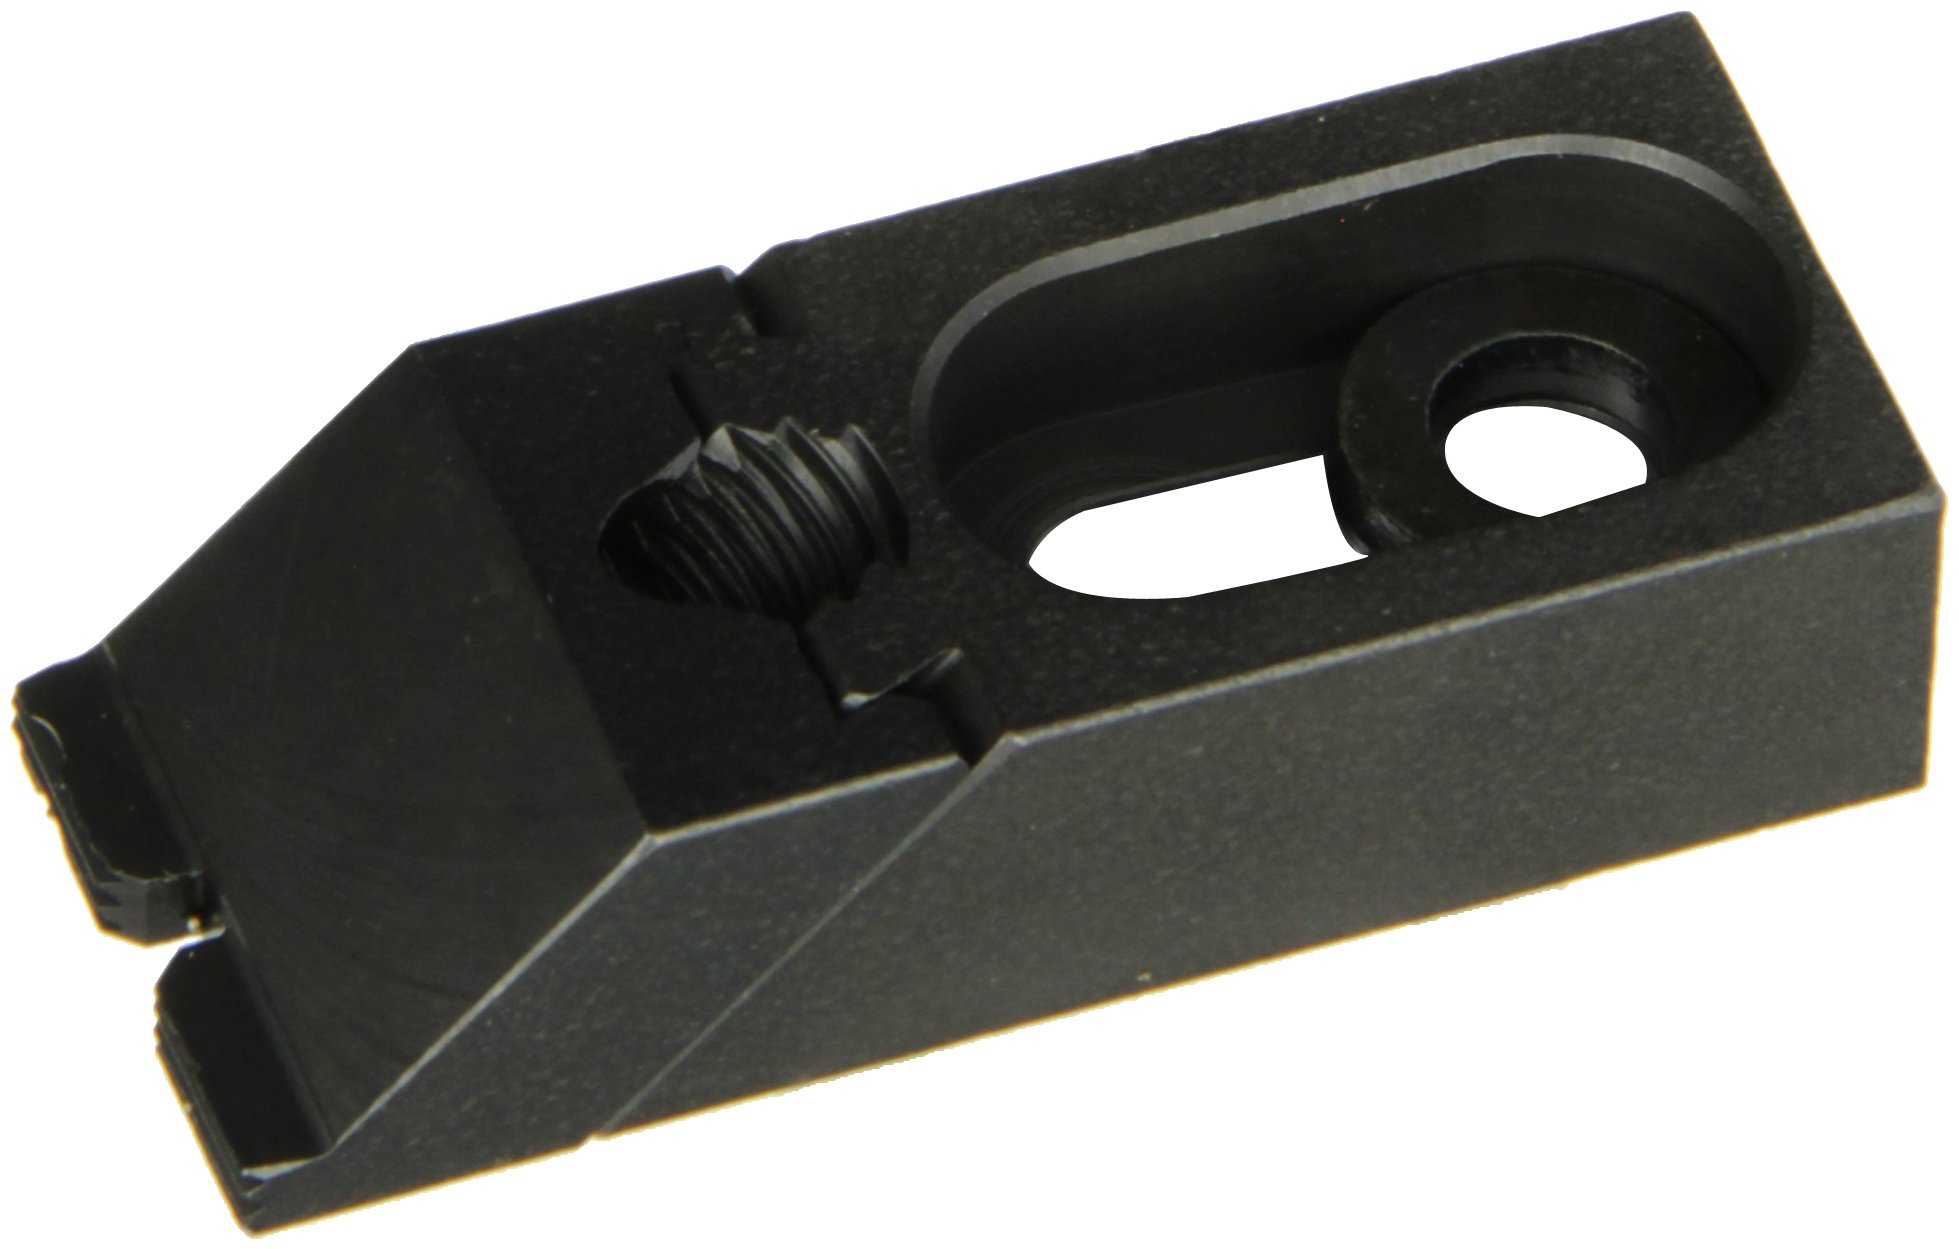 Te-Co 33819 Nuzzler Black Oxide 1018 Steel Low Grip Edge Clamp, 5/16'' Bolt Size, 2-3/8'' Length x 1'' Width x 5/8'' Height